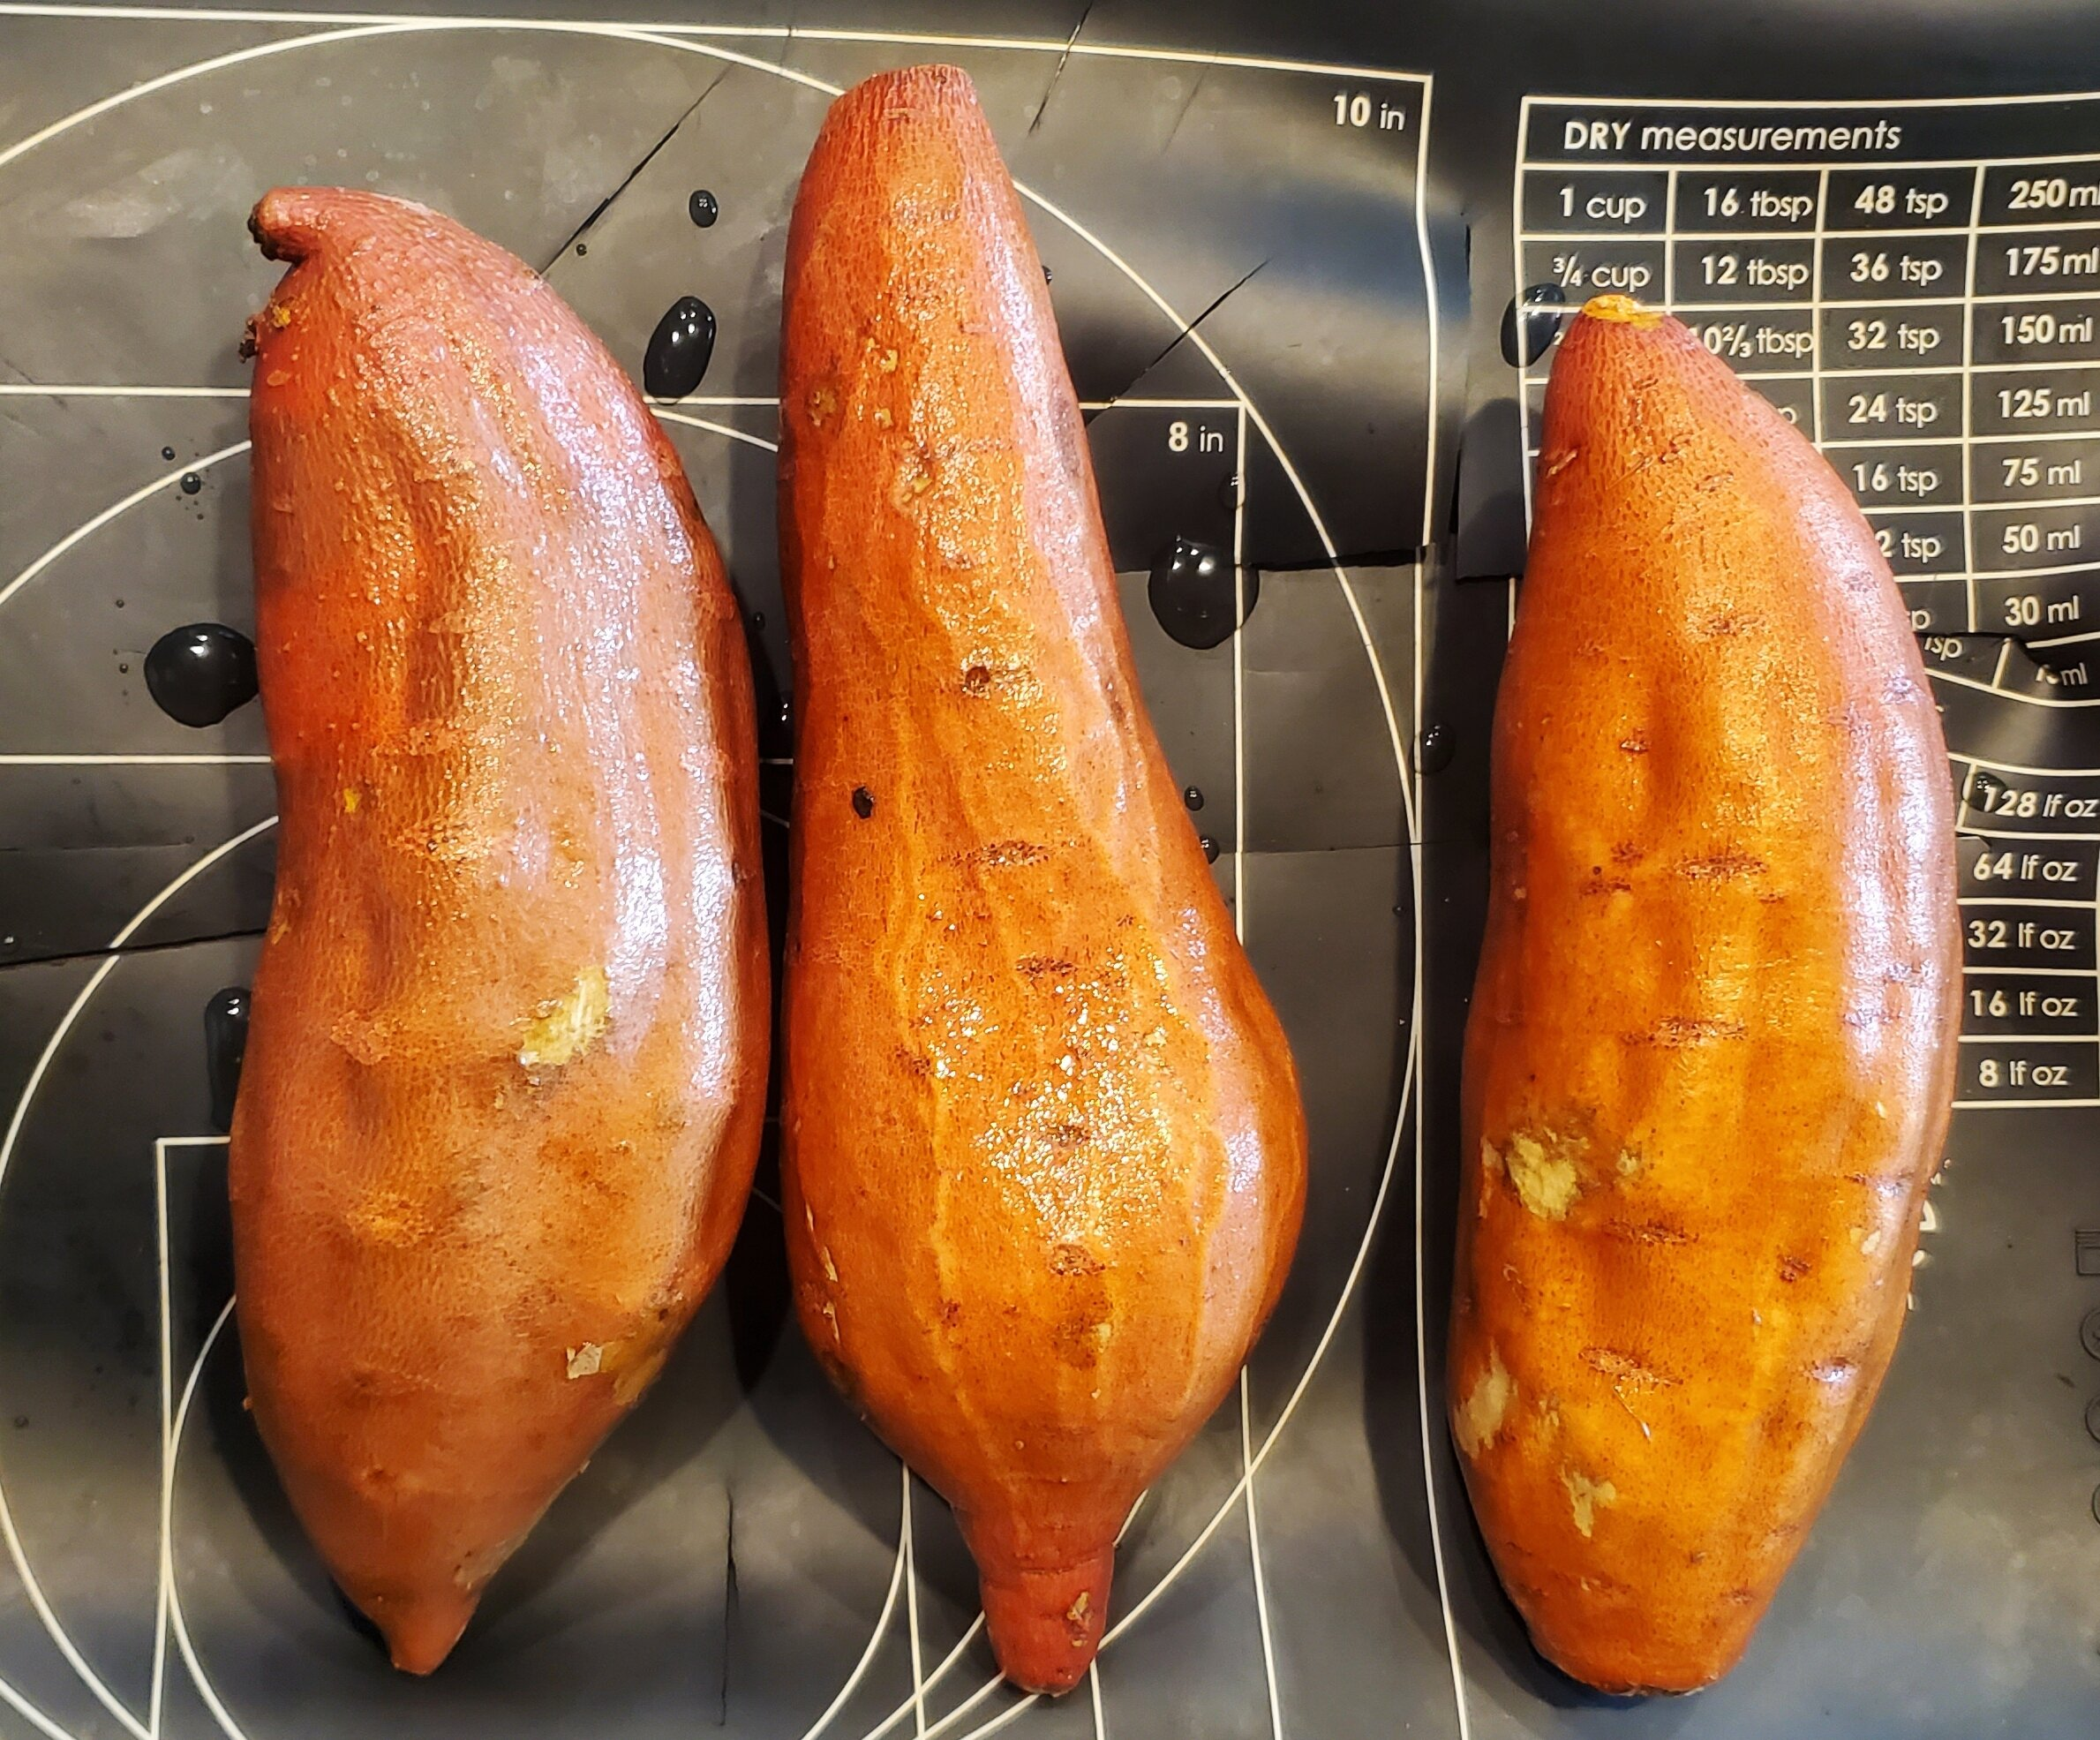 Roast the sweet potatoes at 400 degrees for 1 hour or… - Cut in half and roast at 425 degrees for 30 minutes.